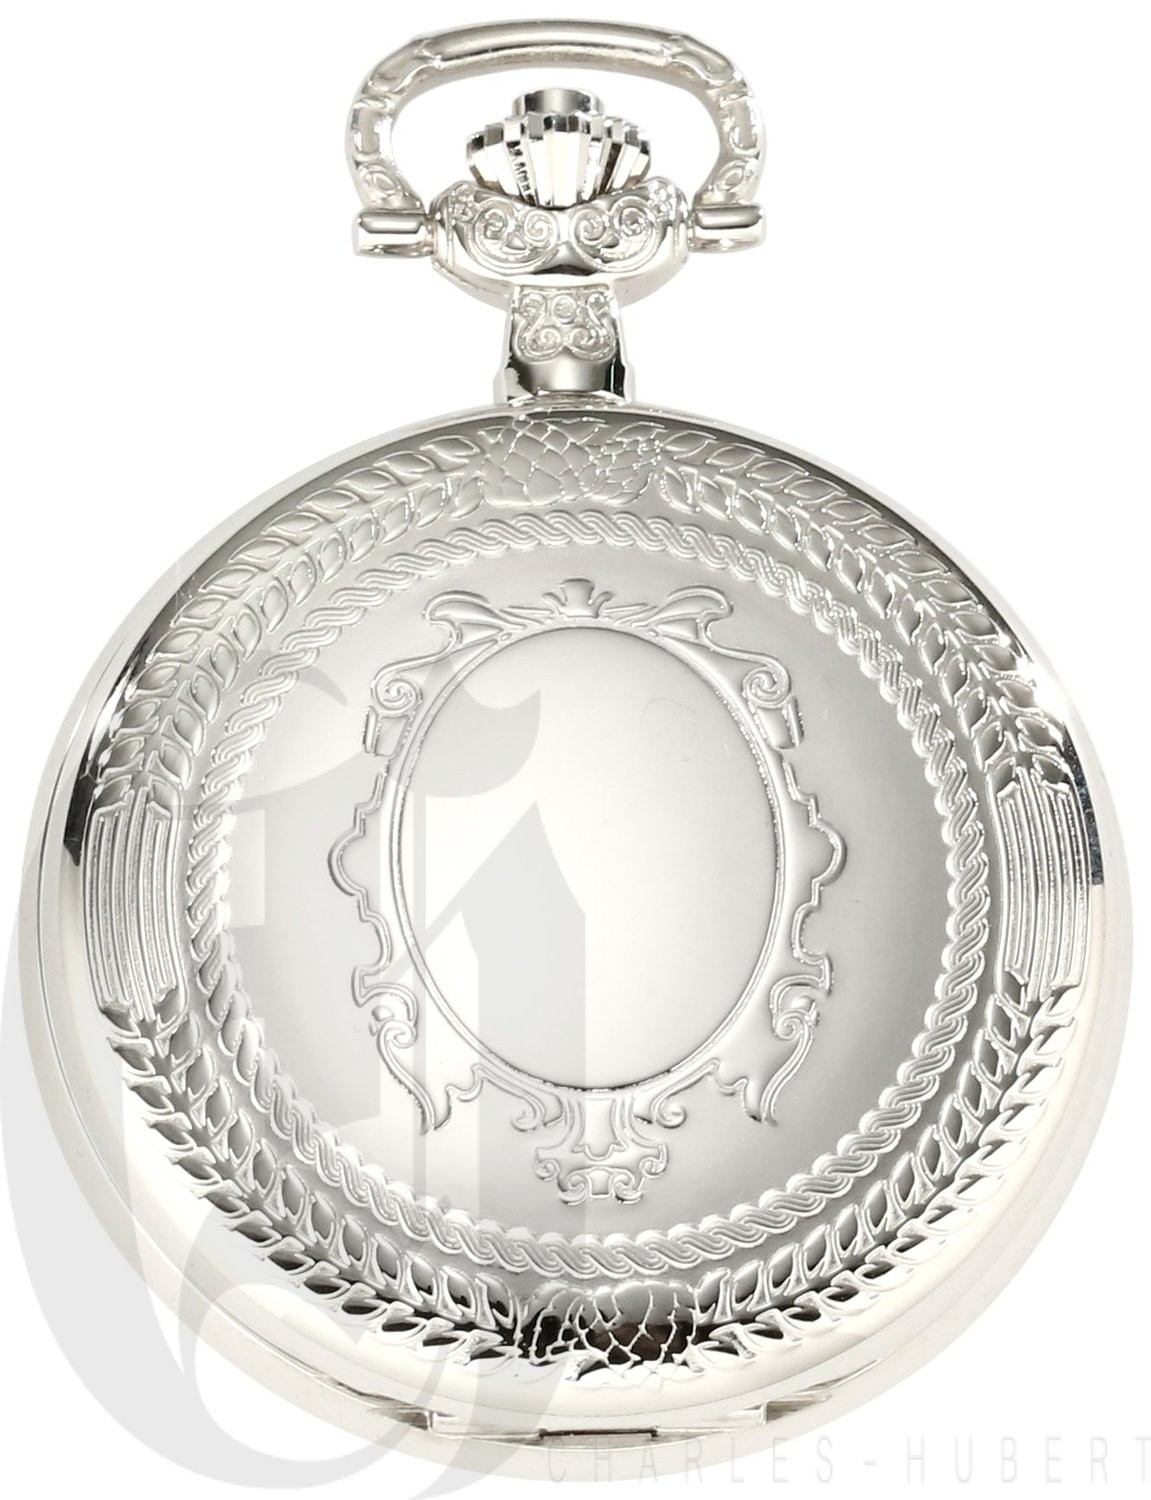 Charles-Hubert Paris Hunter Case Quartz Pocket Watch